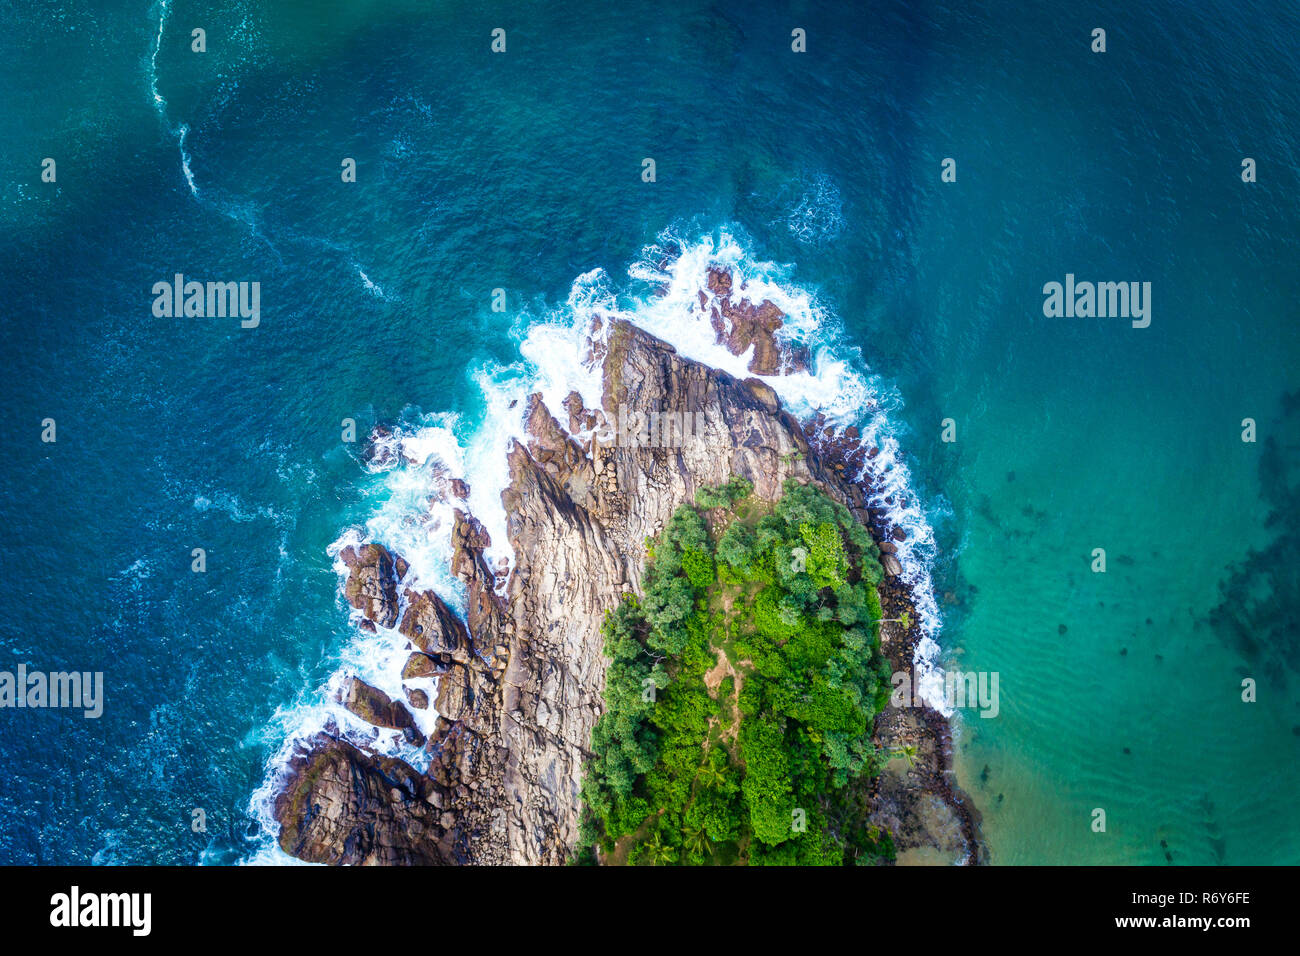 Aerial view of a rocky tropical beach in Sri Lanka - Stock Image